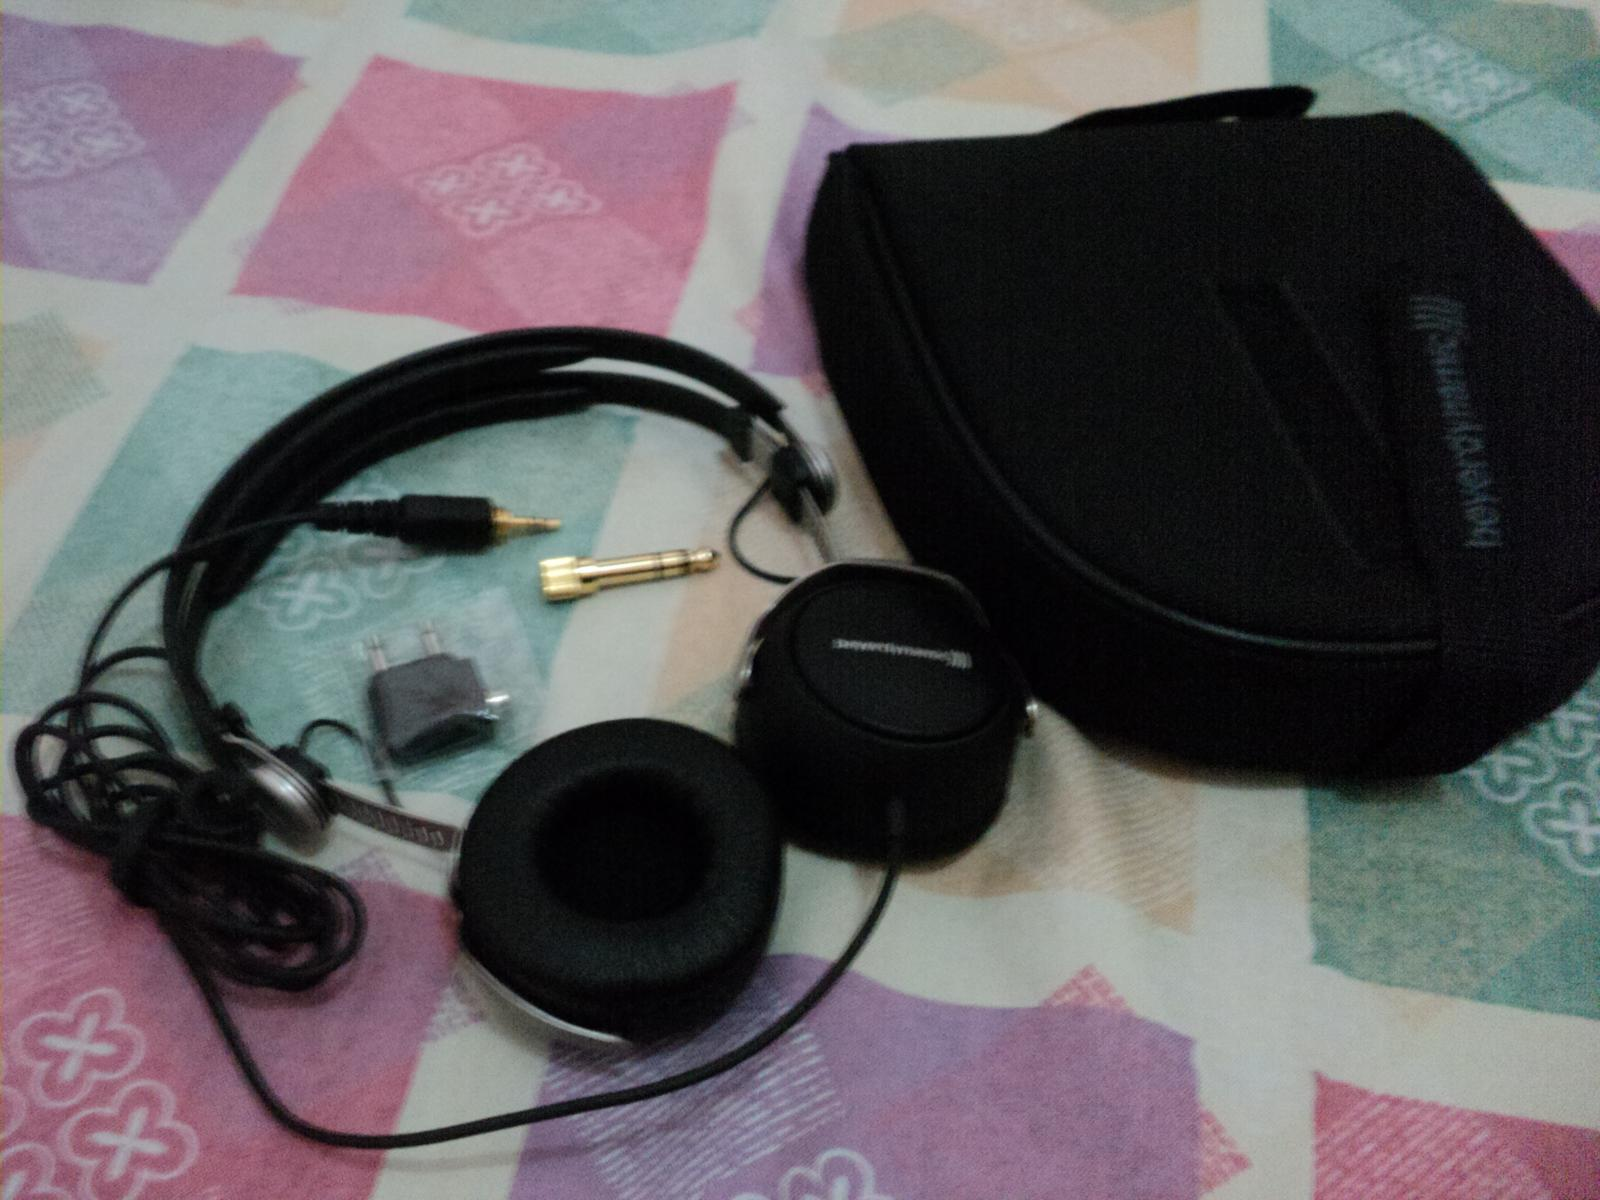 Beyerdynamic DT 1350 accessories